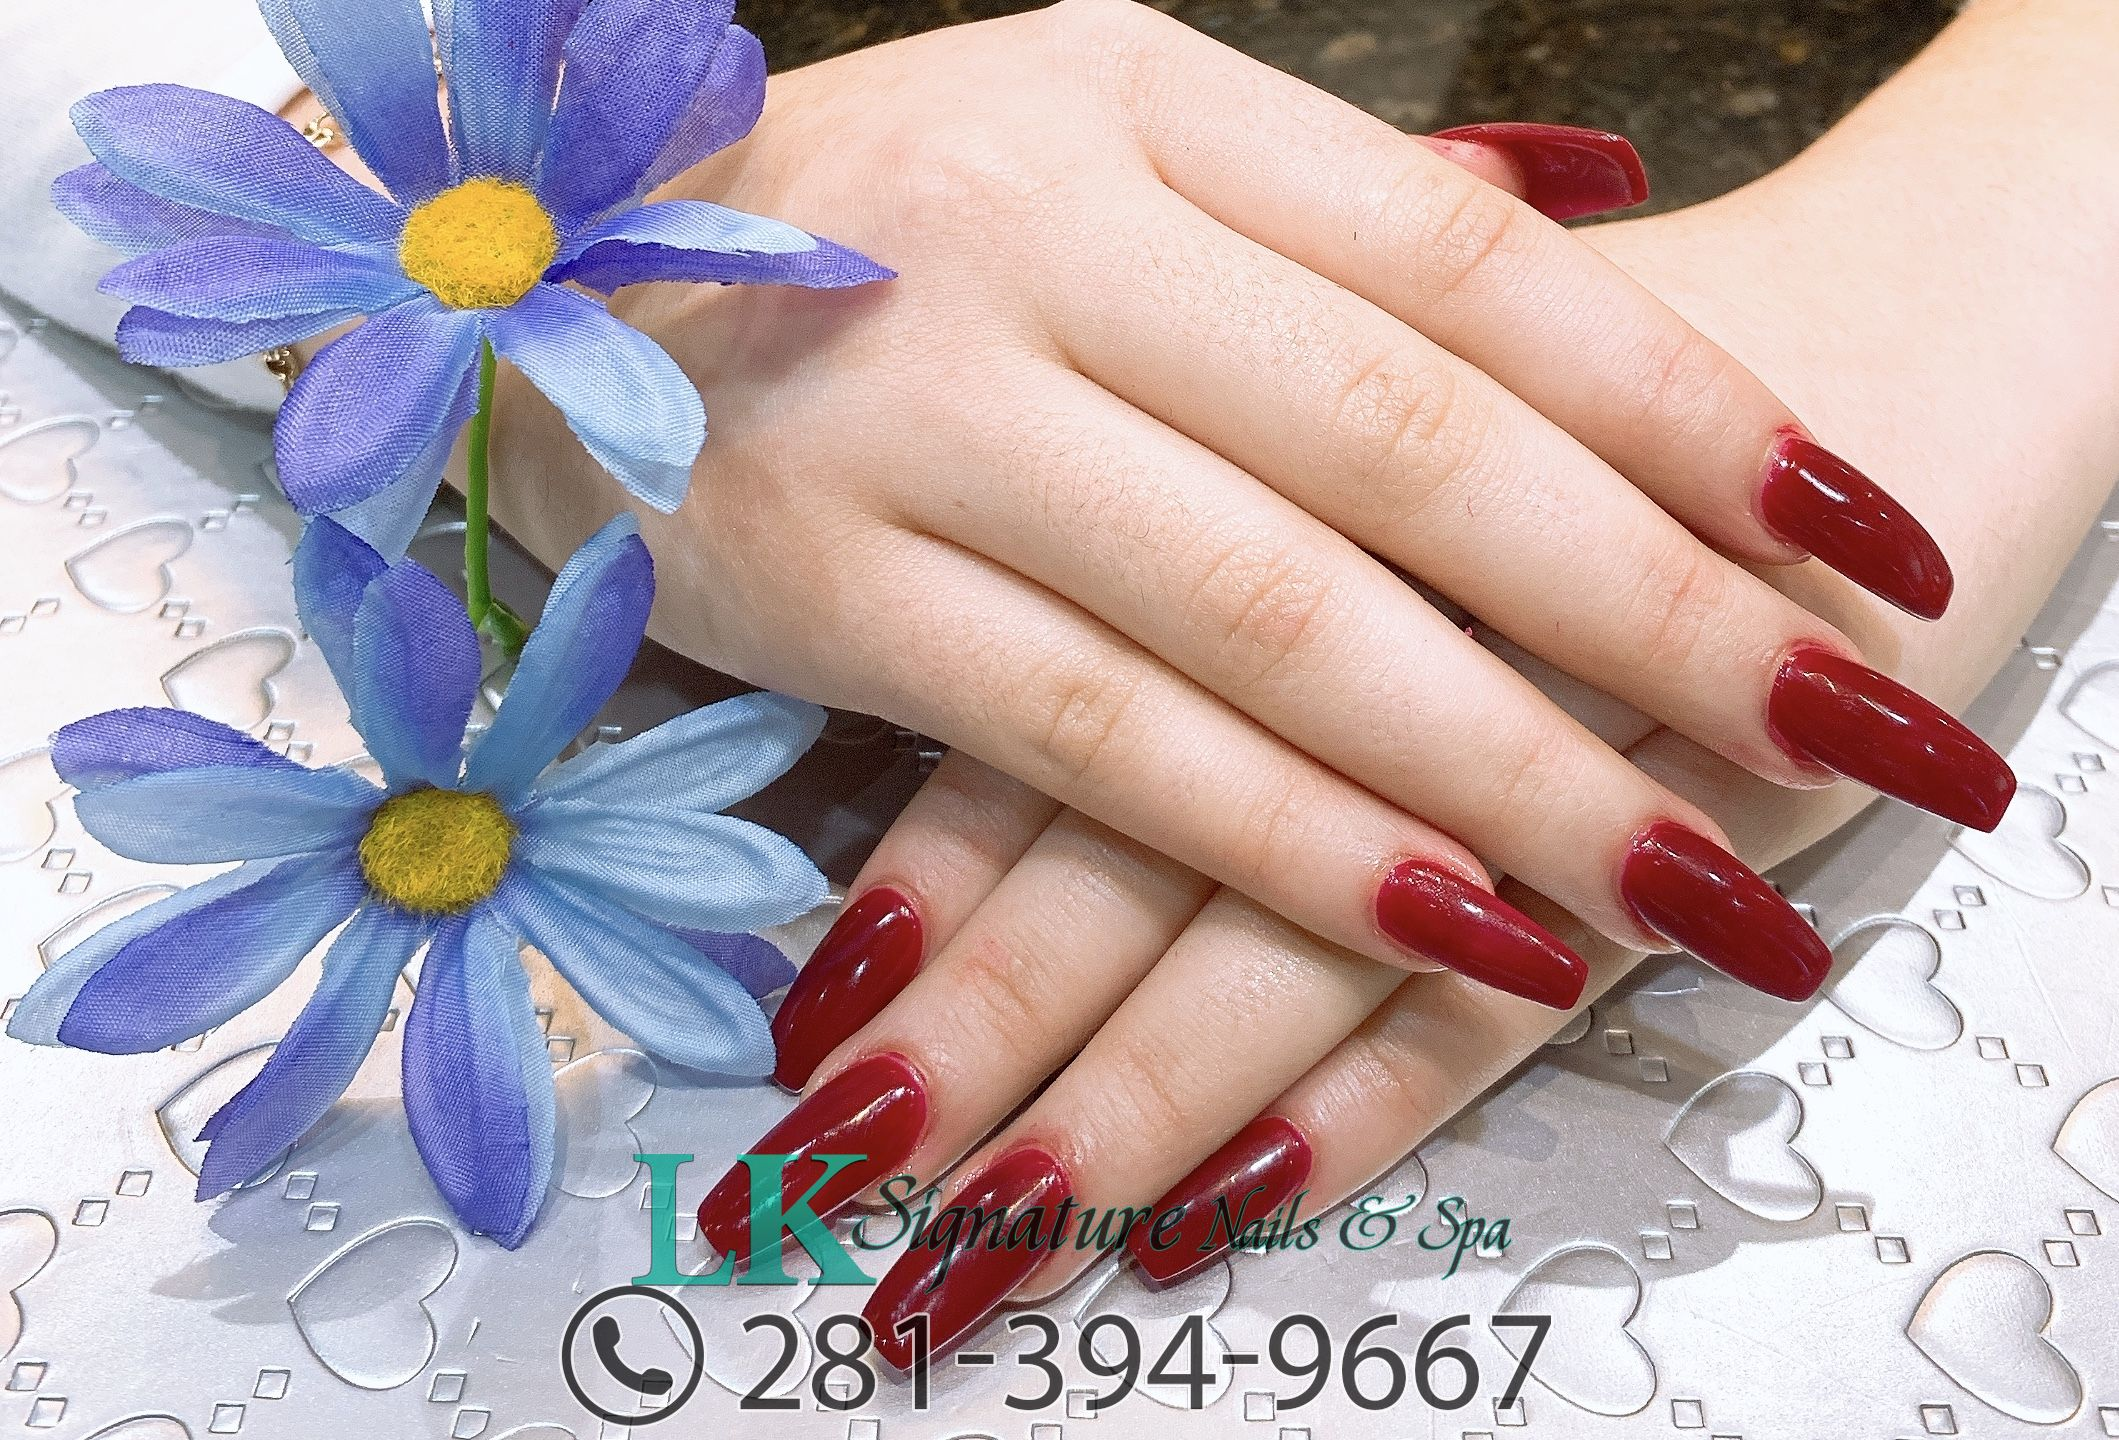 LK Signature Nails Spa - Nail salon 77494 in Katy TX